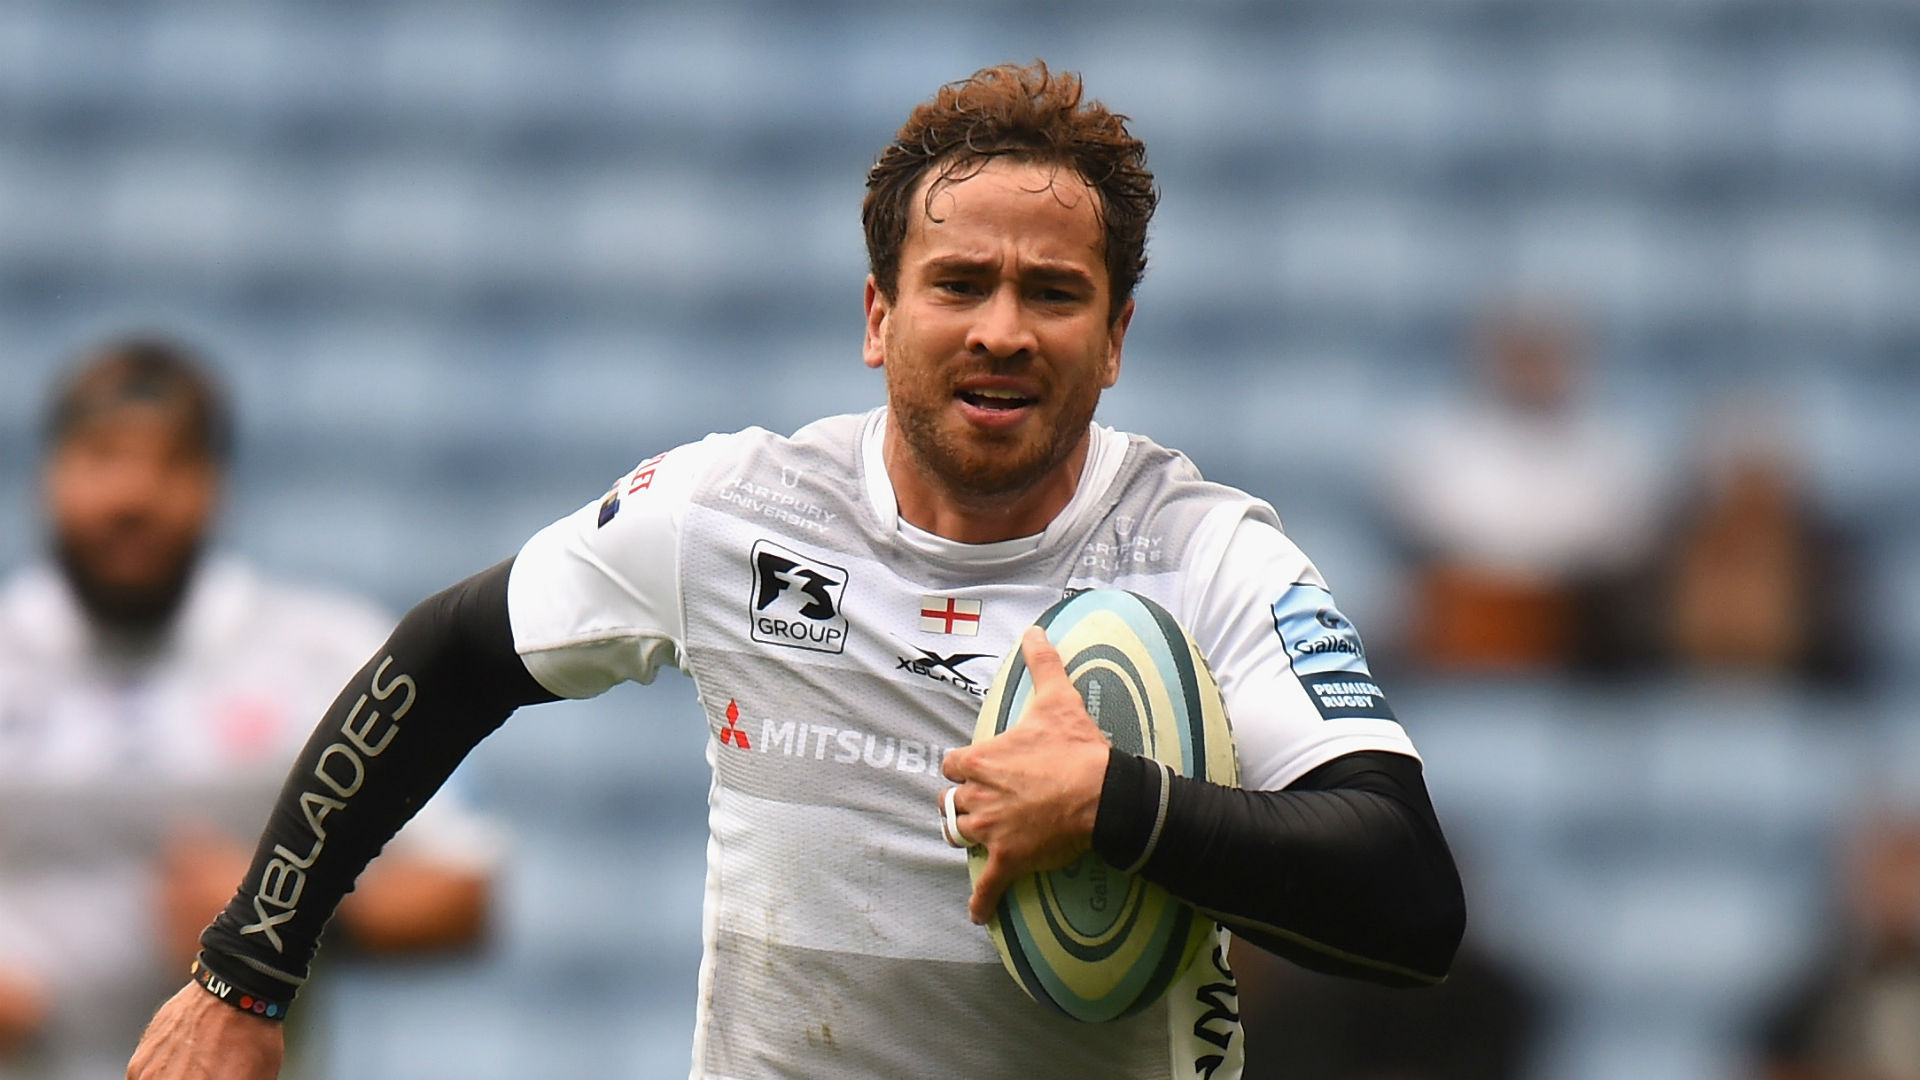 Cipriani named Premiership Player of the Season